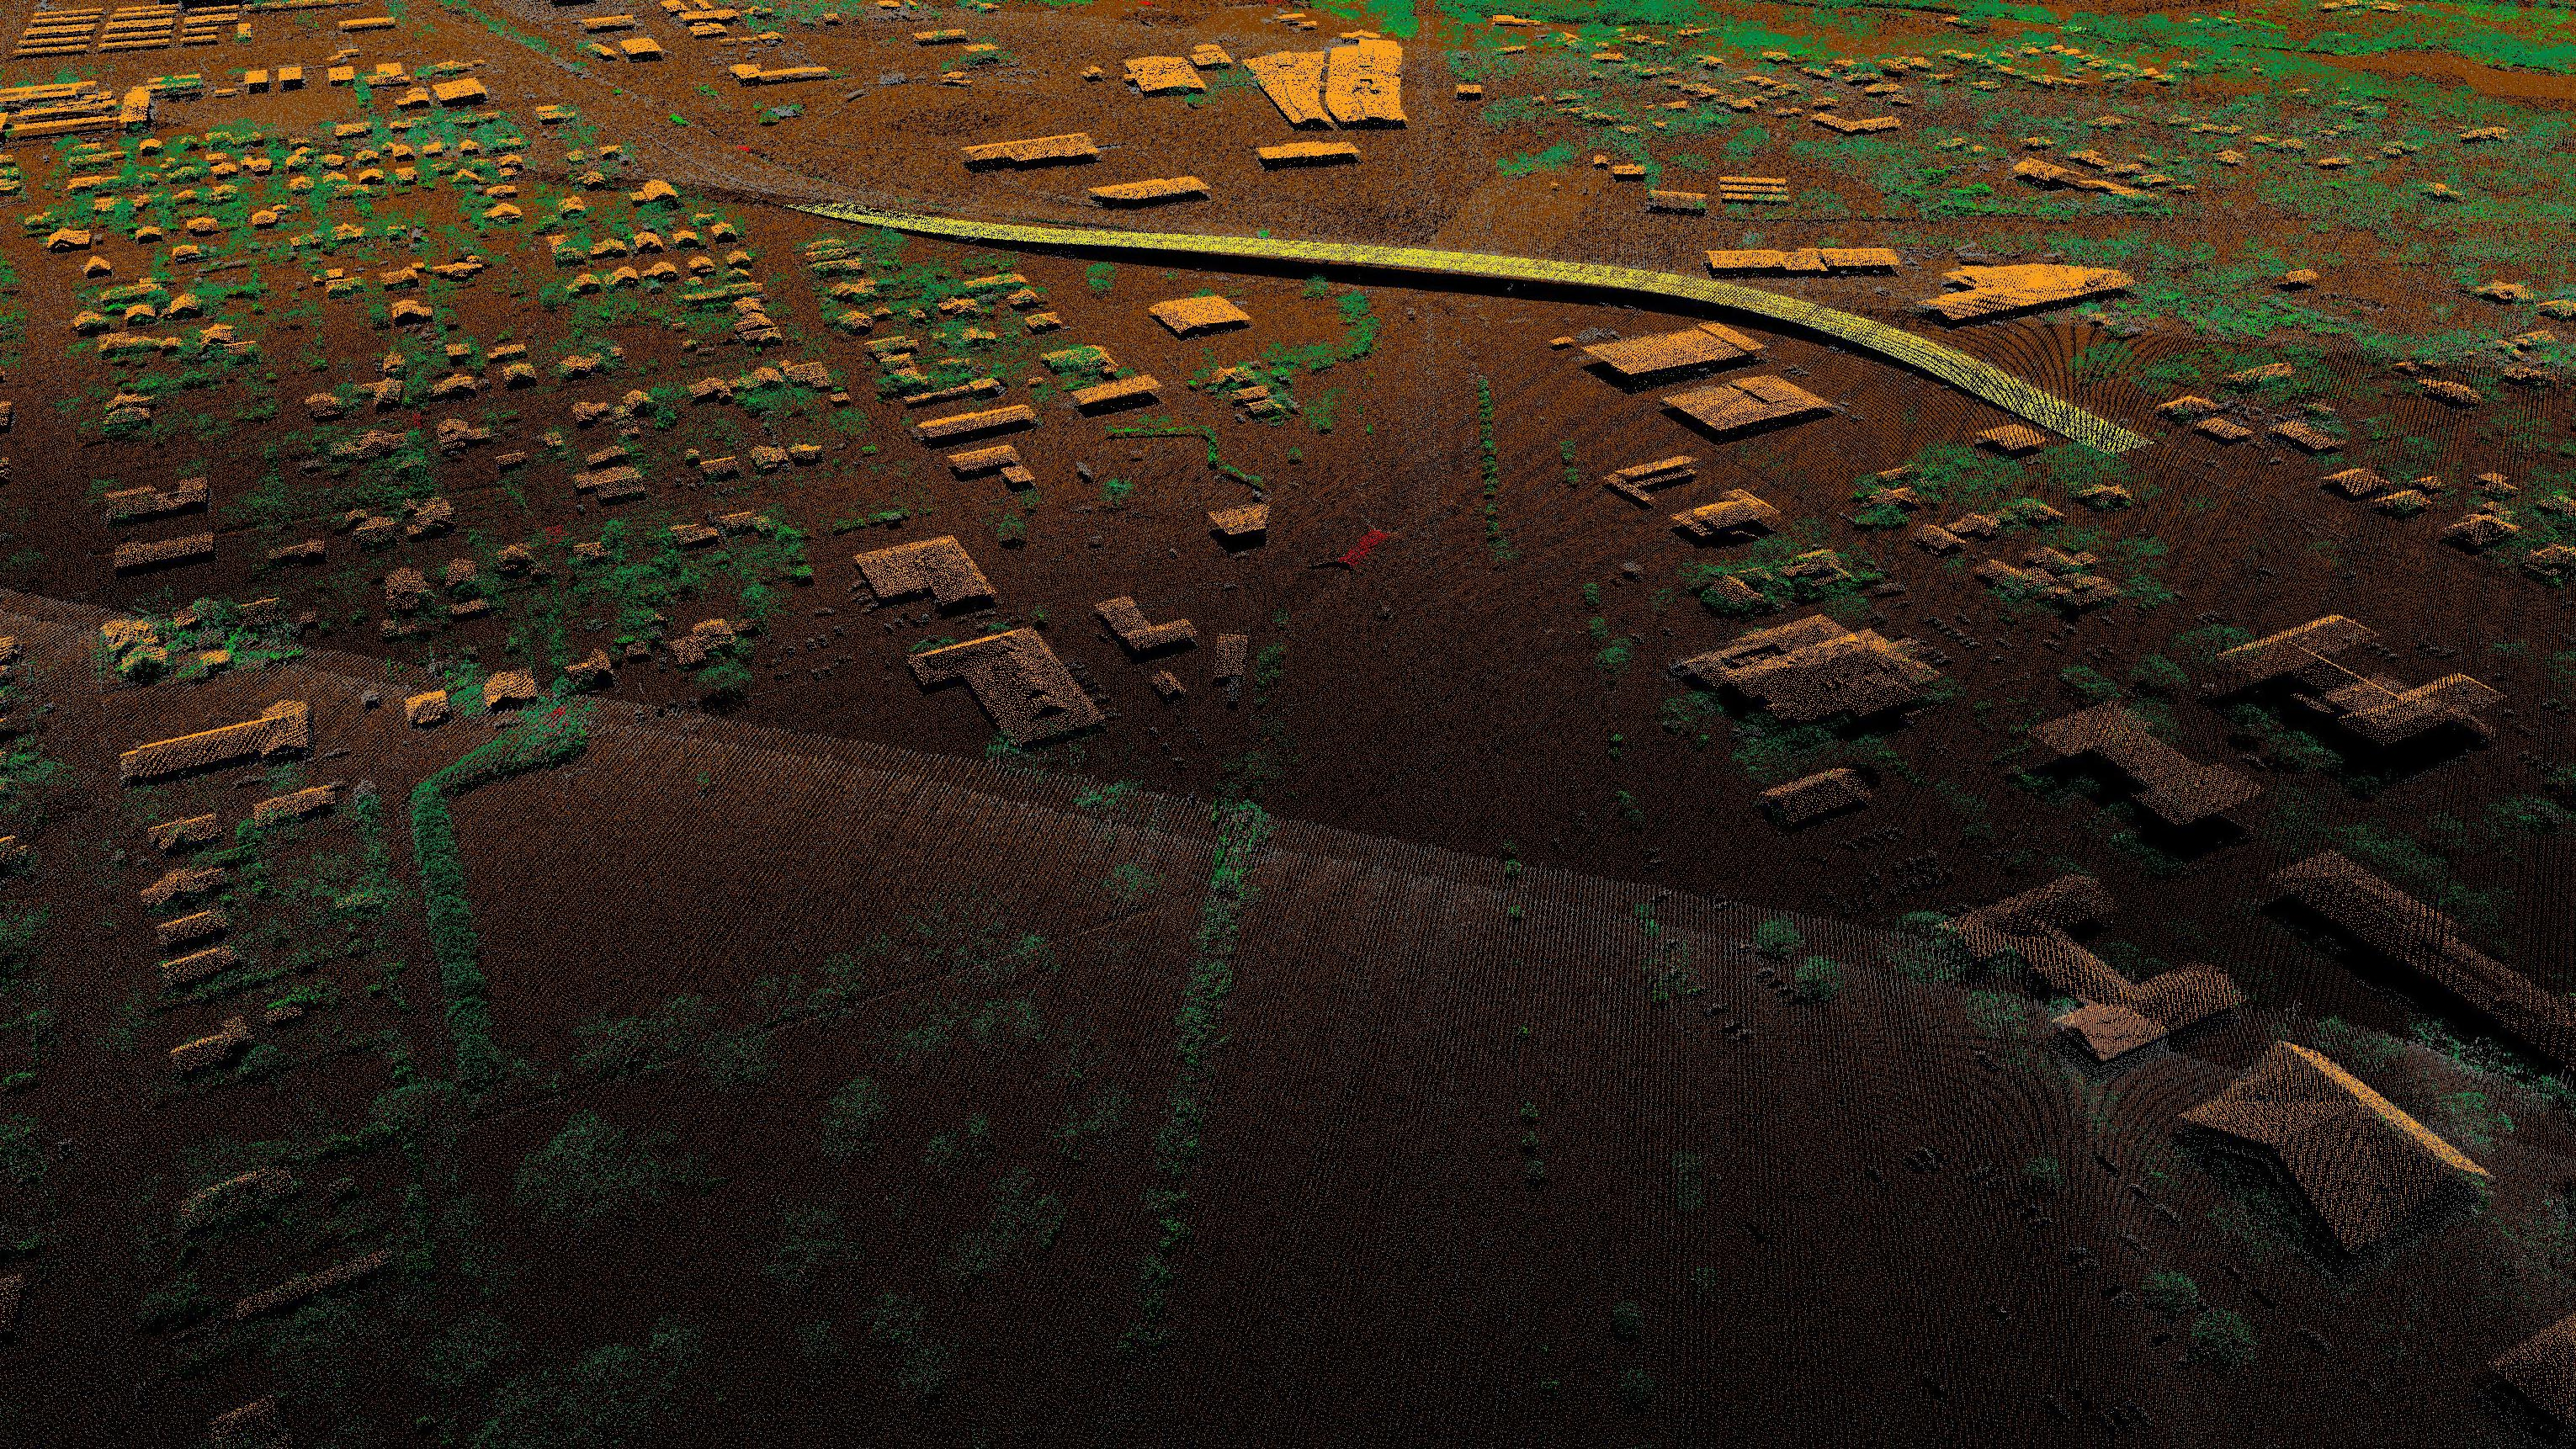 detail image of the Brown County Lidar